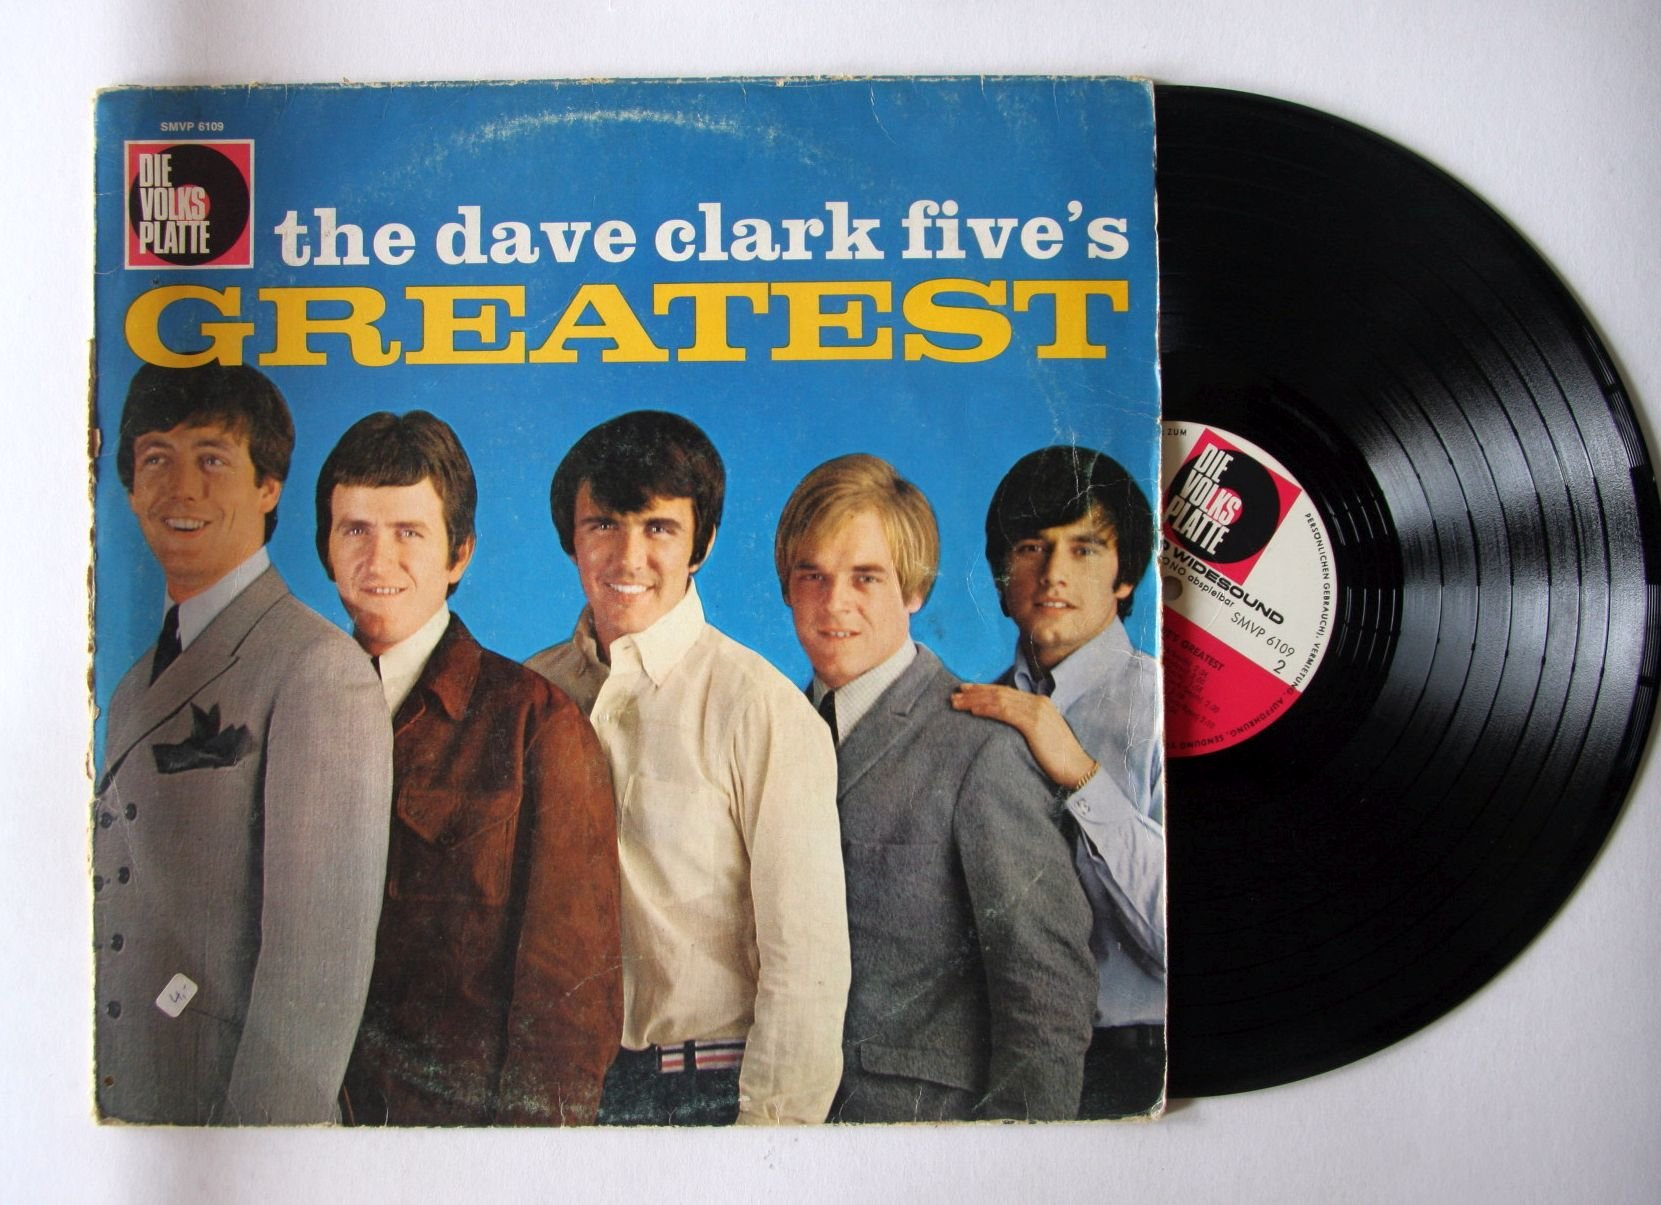 Dave Clark Five - The Dave Clark Five's Greatest